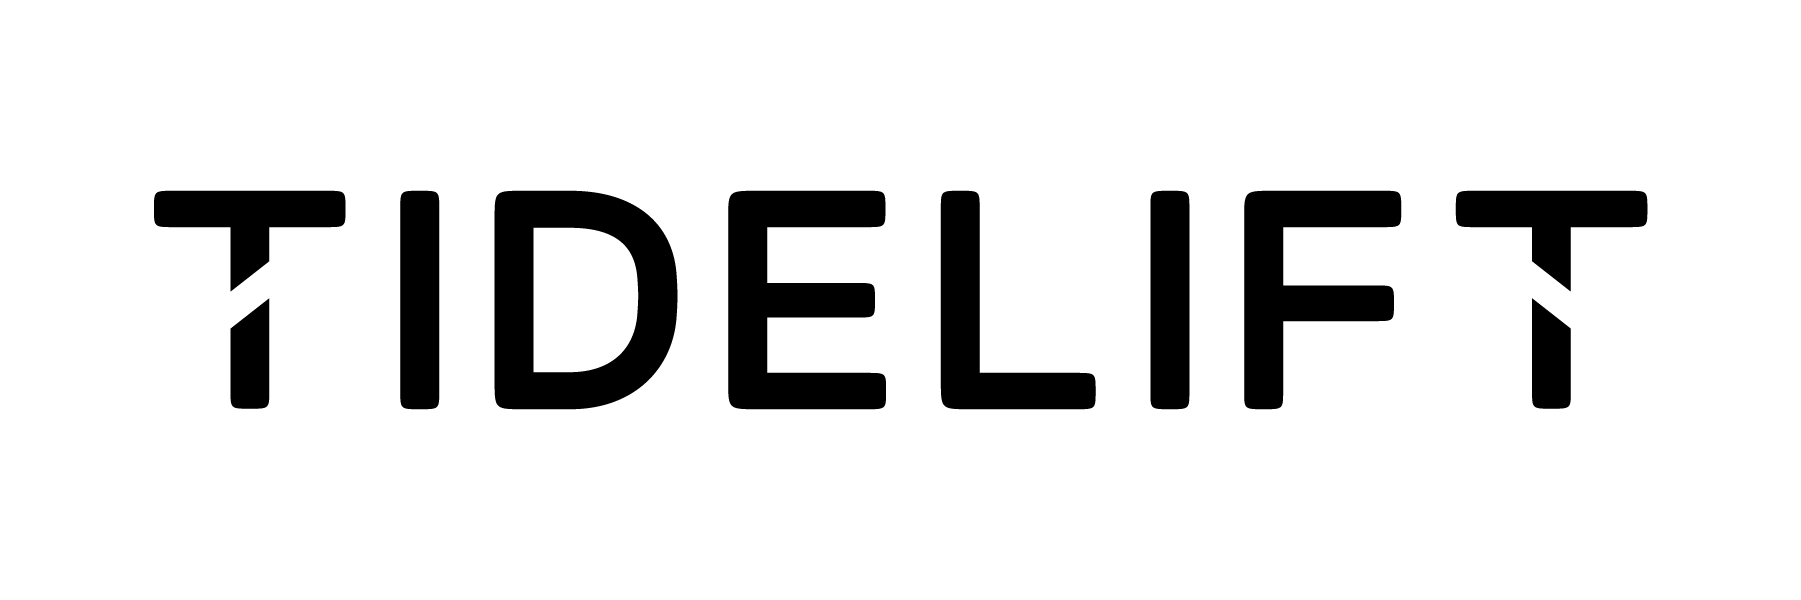 Tidelift-logo-on-light.svg